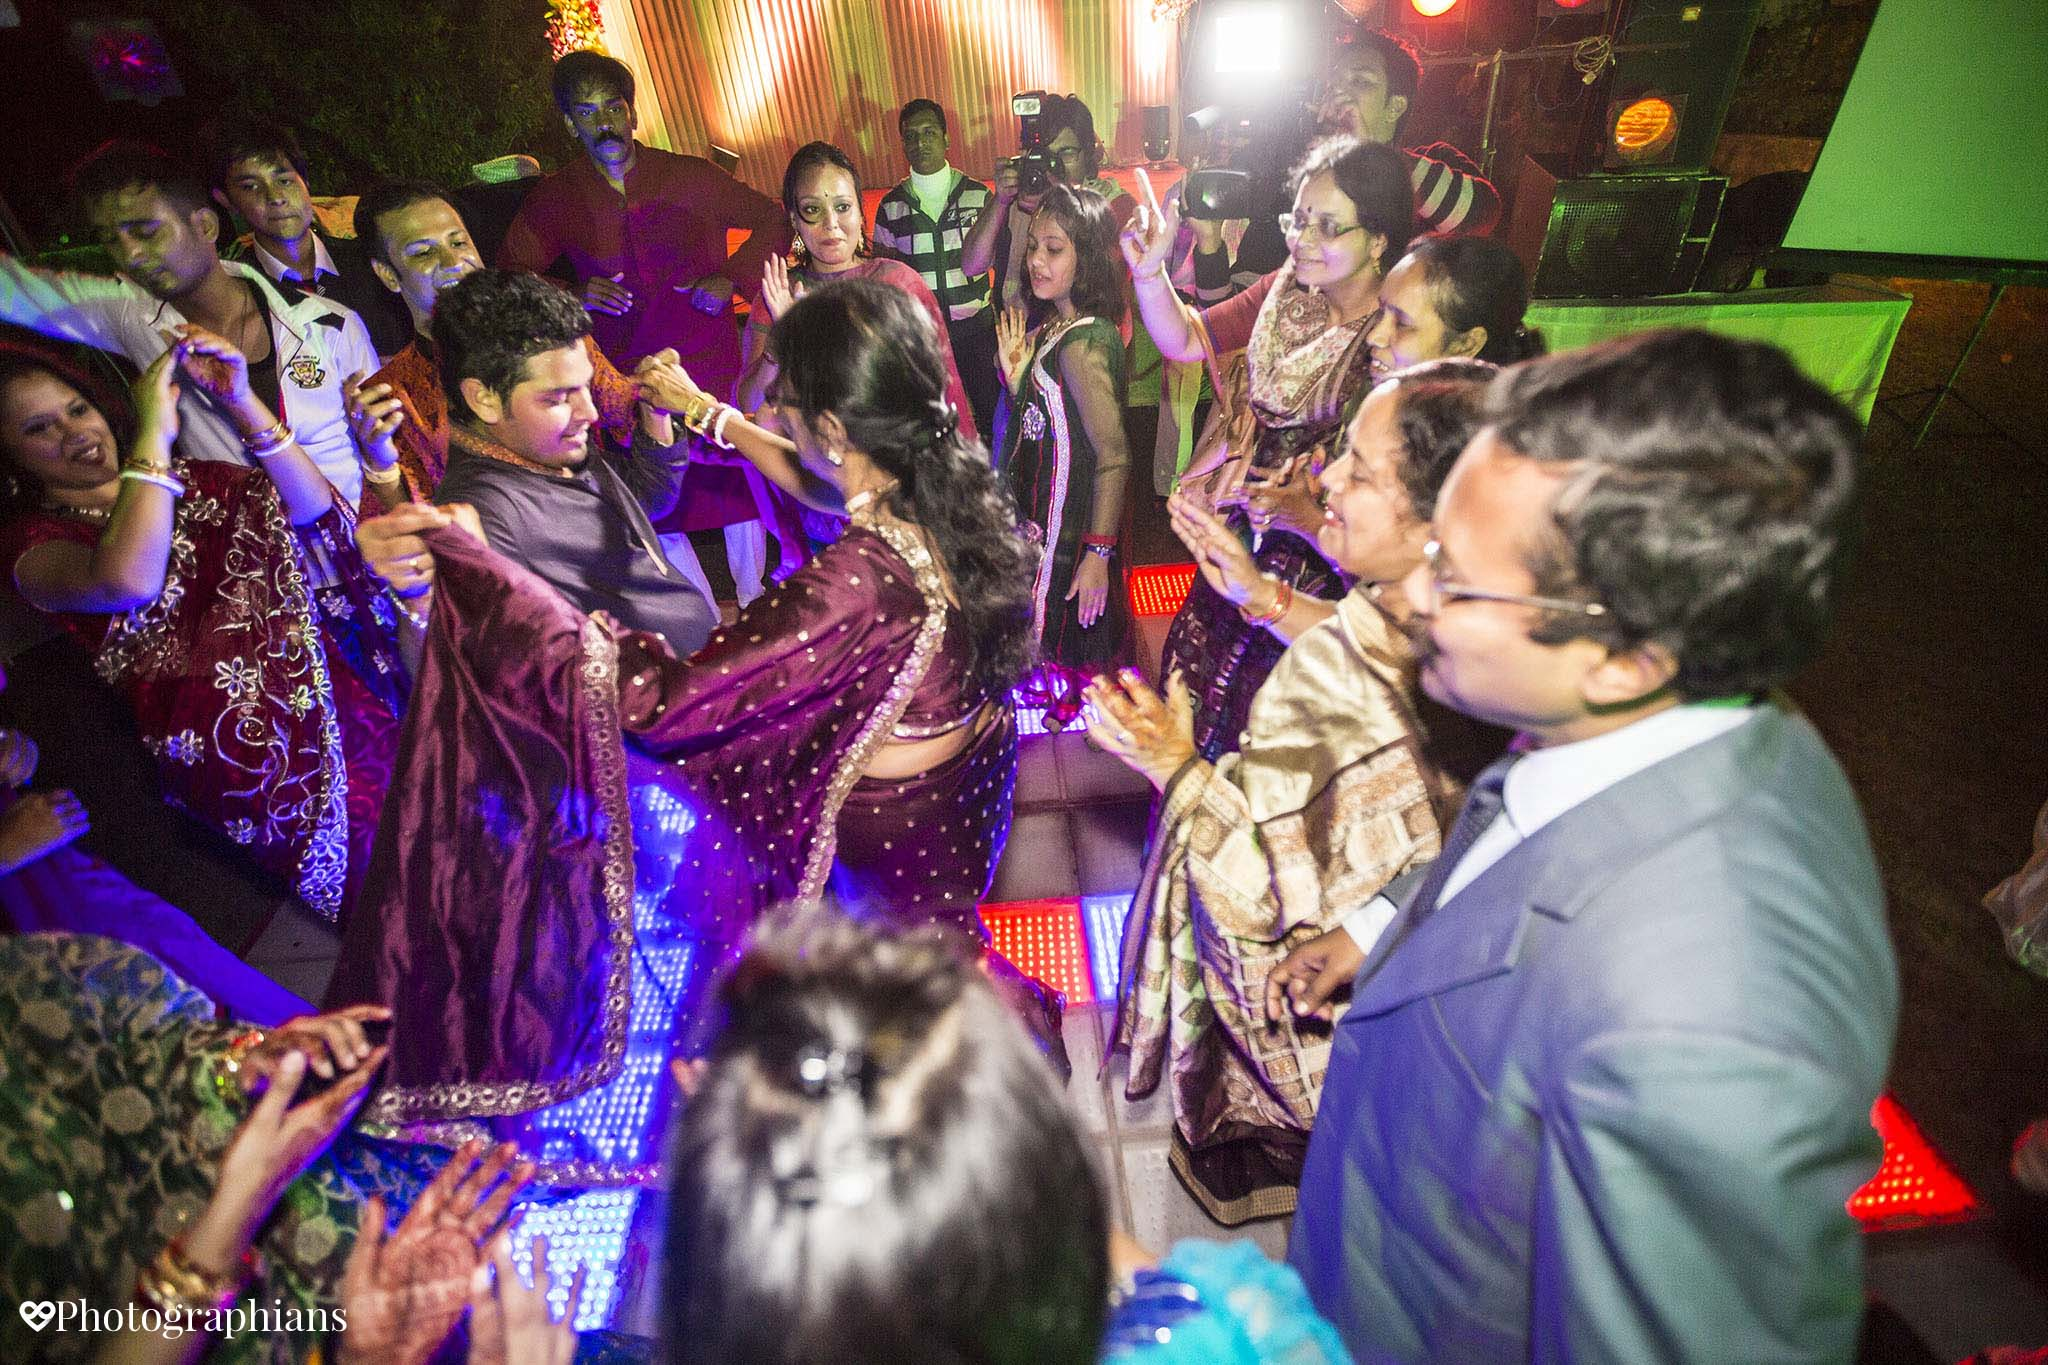 Photographians_Indian_Destination_Wedding_189